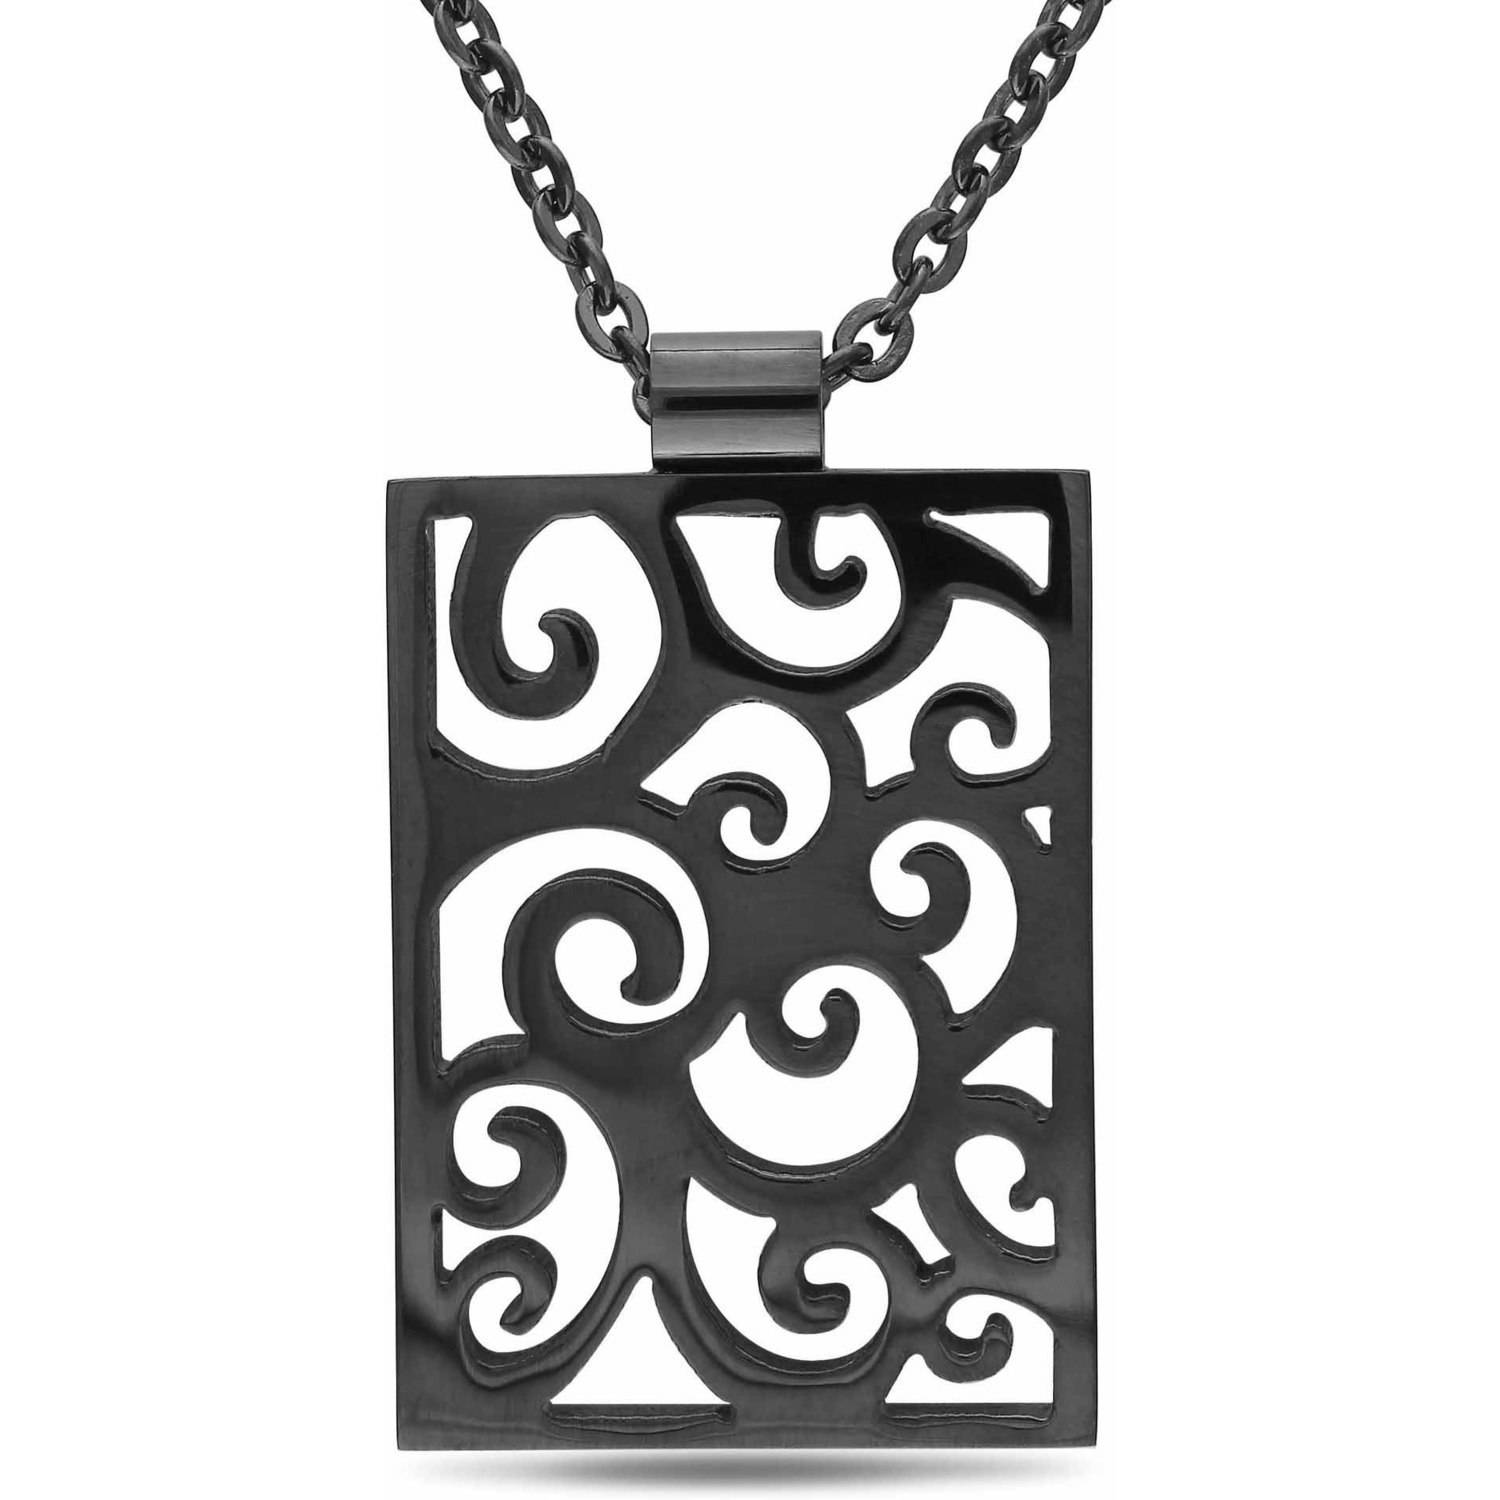 Stainless Steel Multi-Design Fashion Pendant, 18""